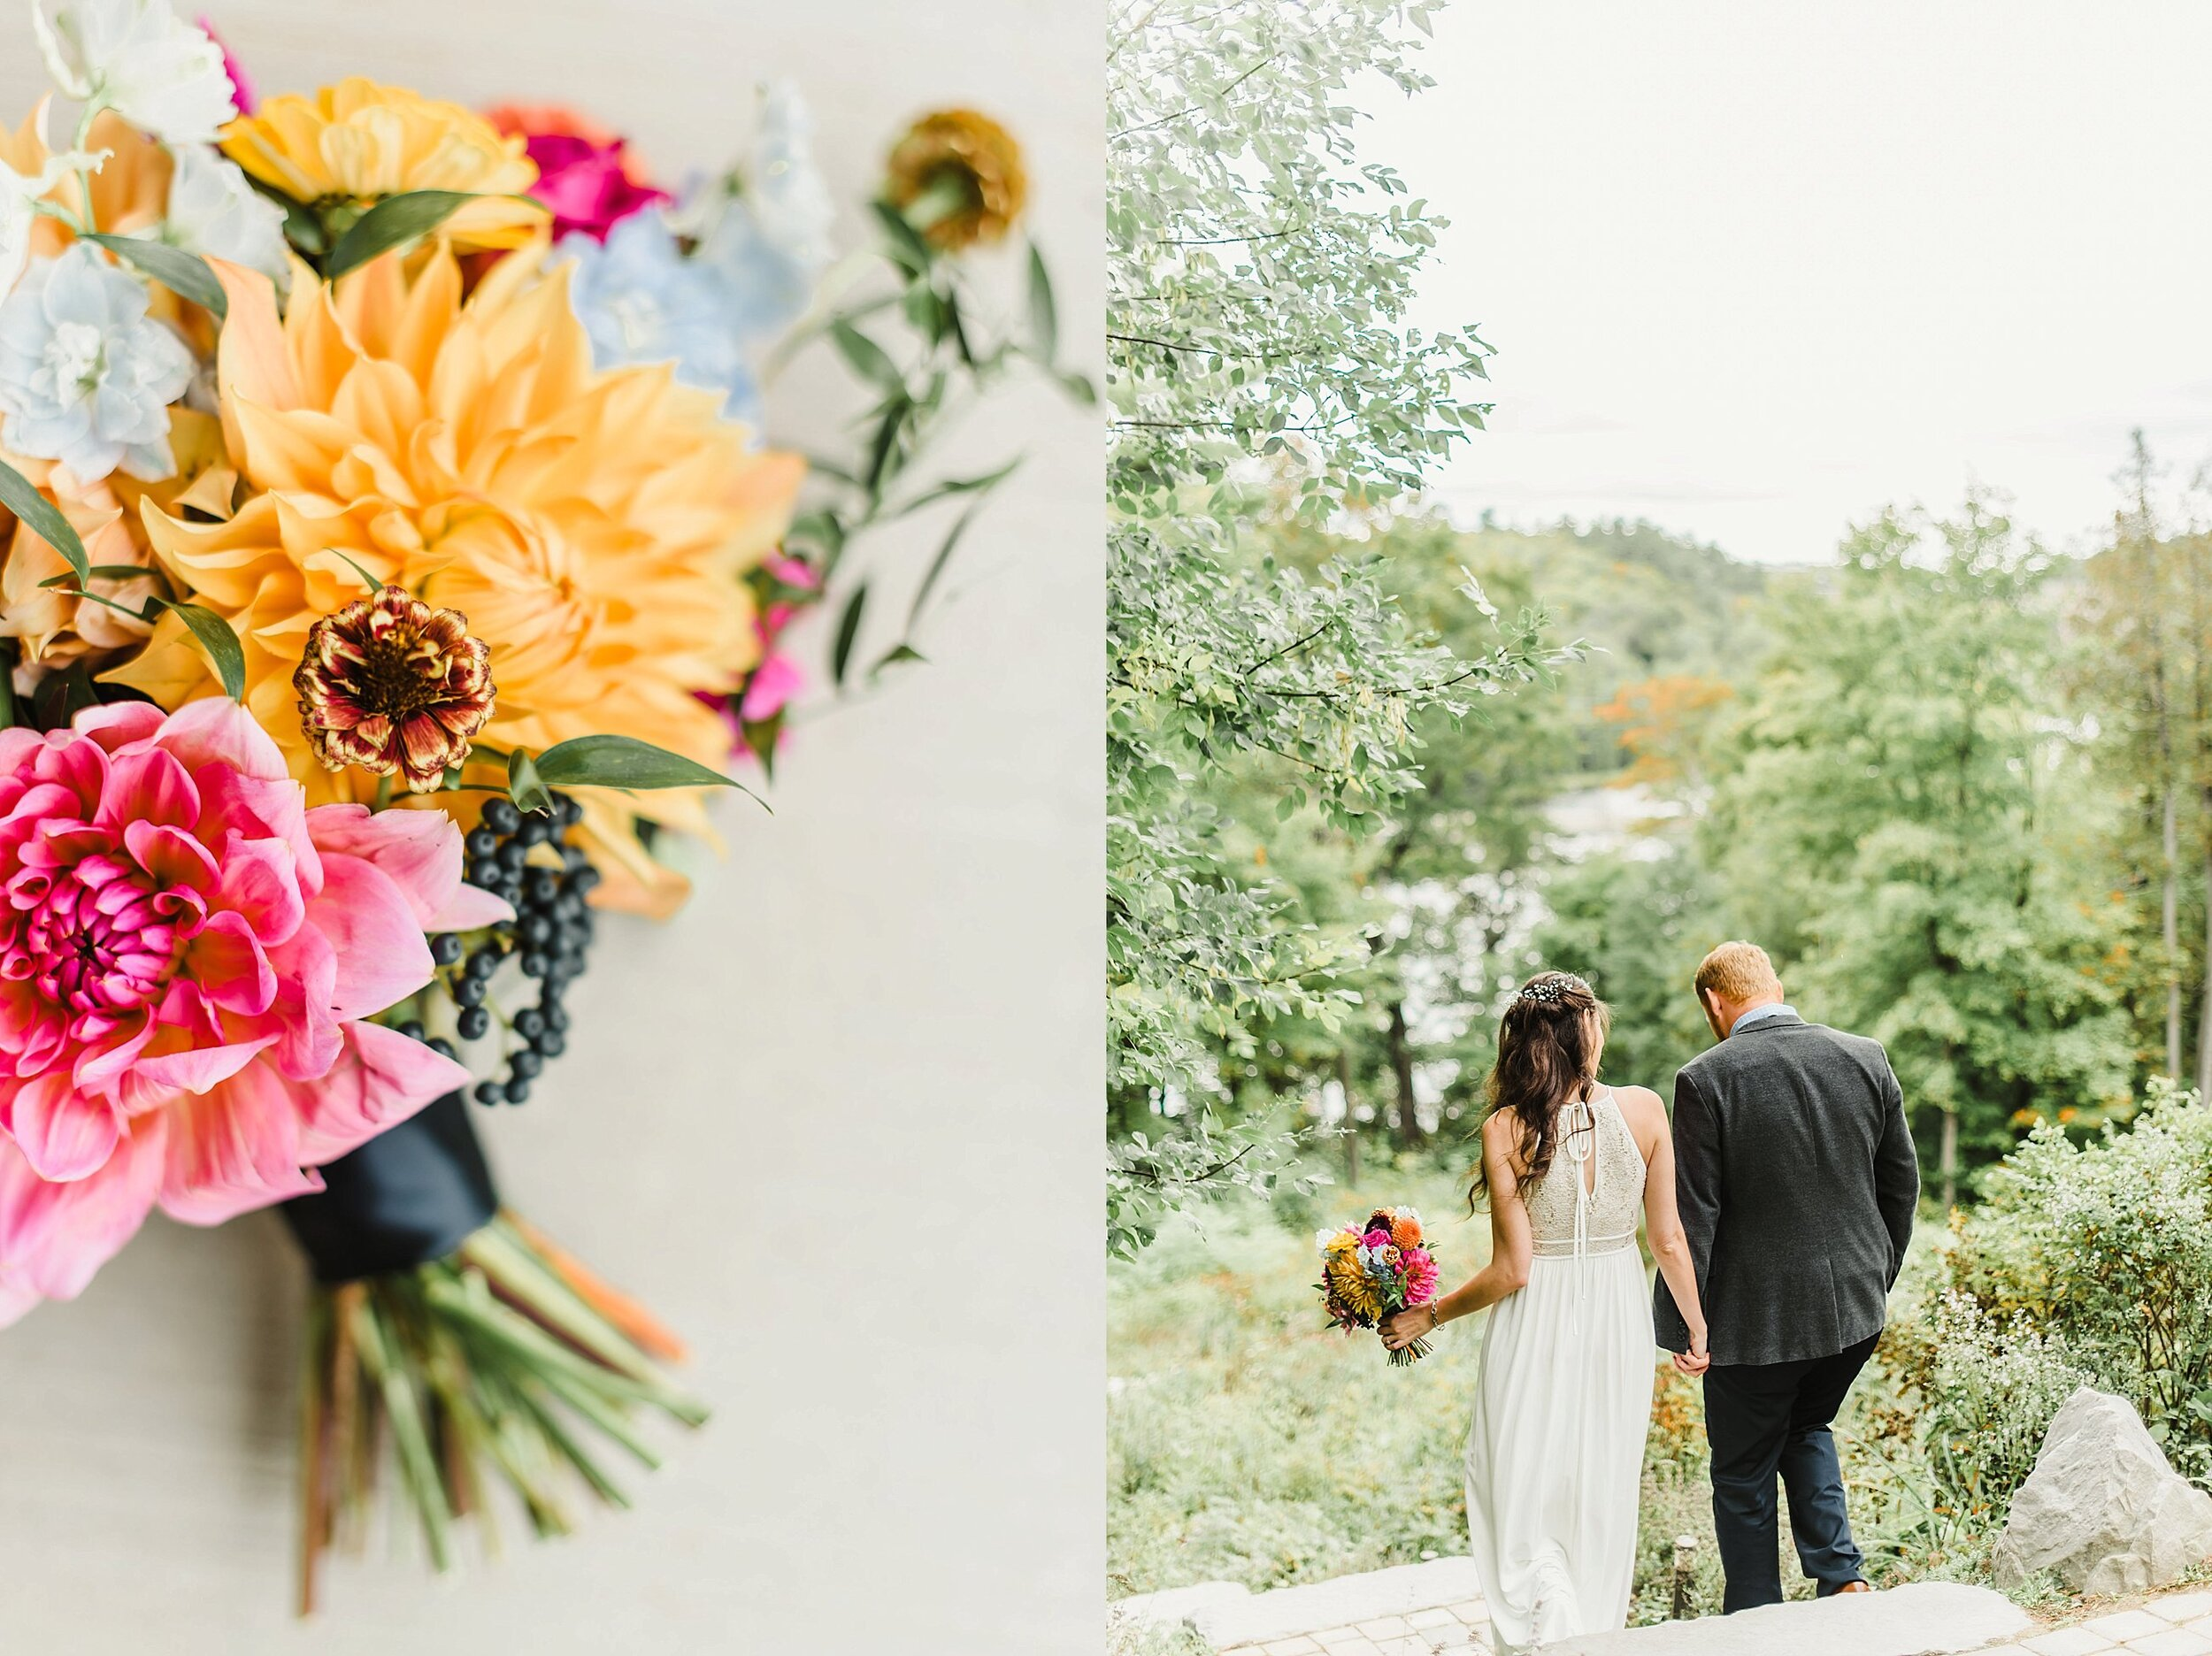 light airy indie fine art ottawa wedding photographer | Ali and Batoul Photography_1269.jpg